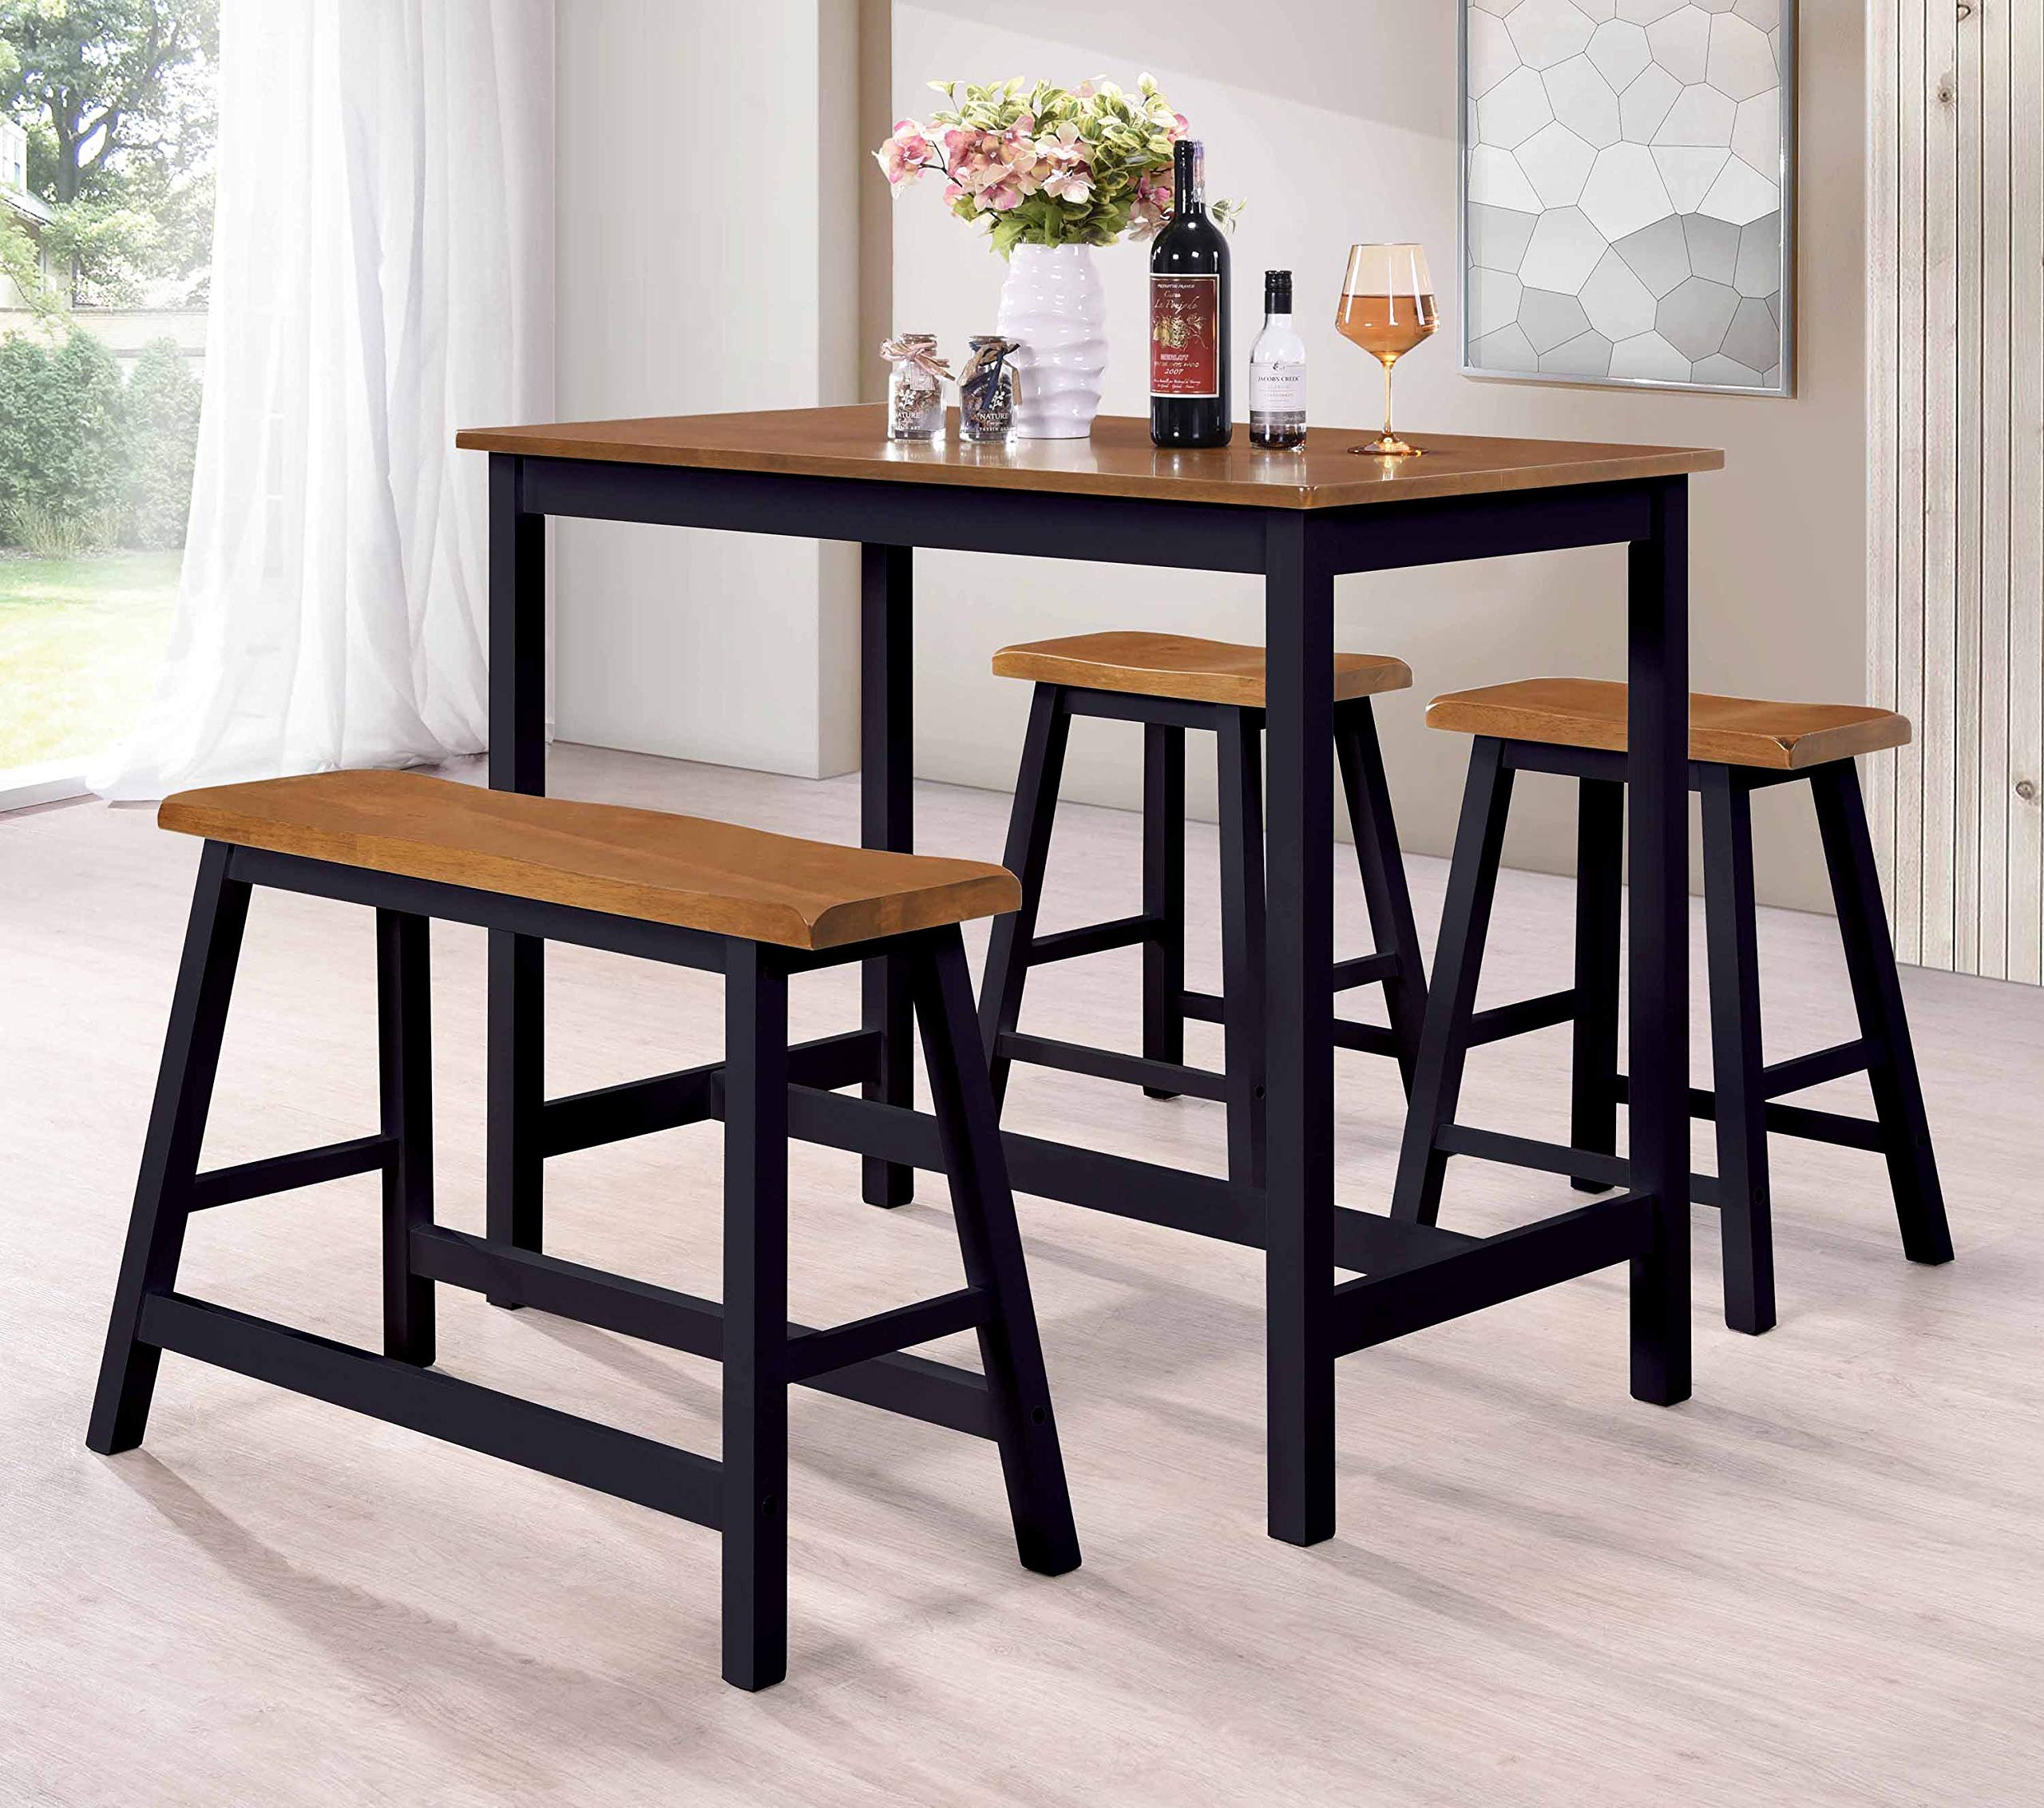 Kings Brand Furniture - Slocum 4 Piece Counter Height Pub Dining Set. Table, Bench & 2 Stools